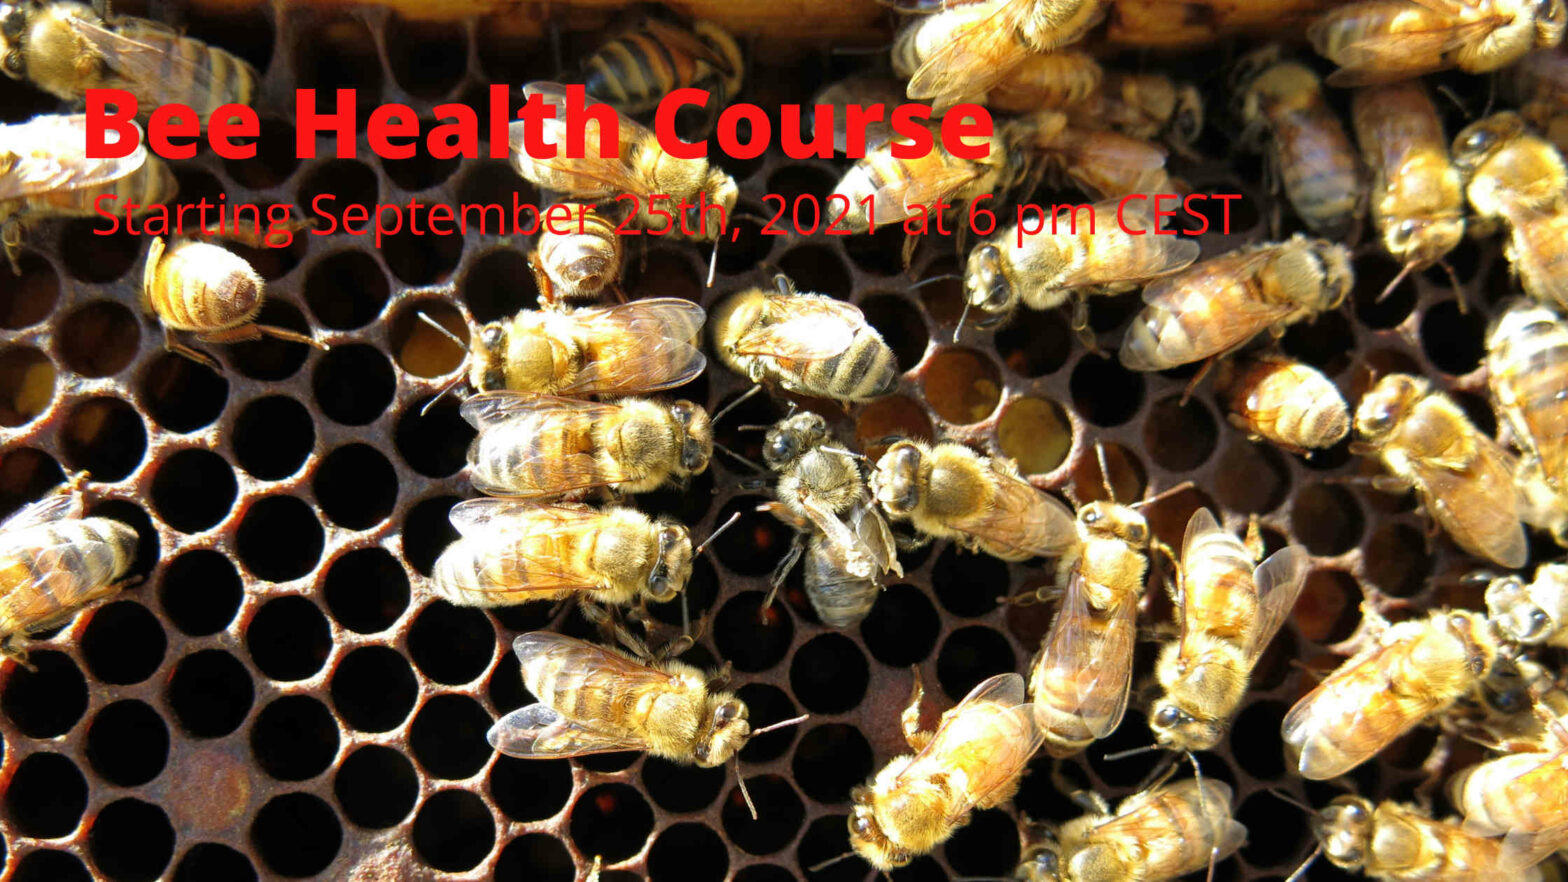 Bee Health Course